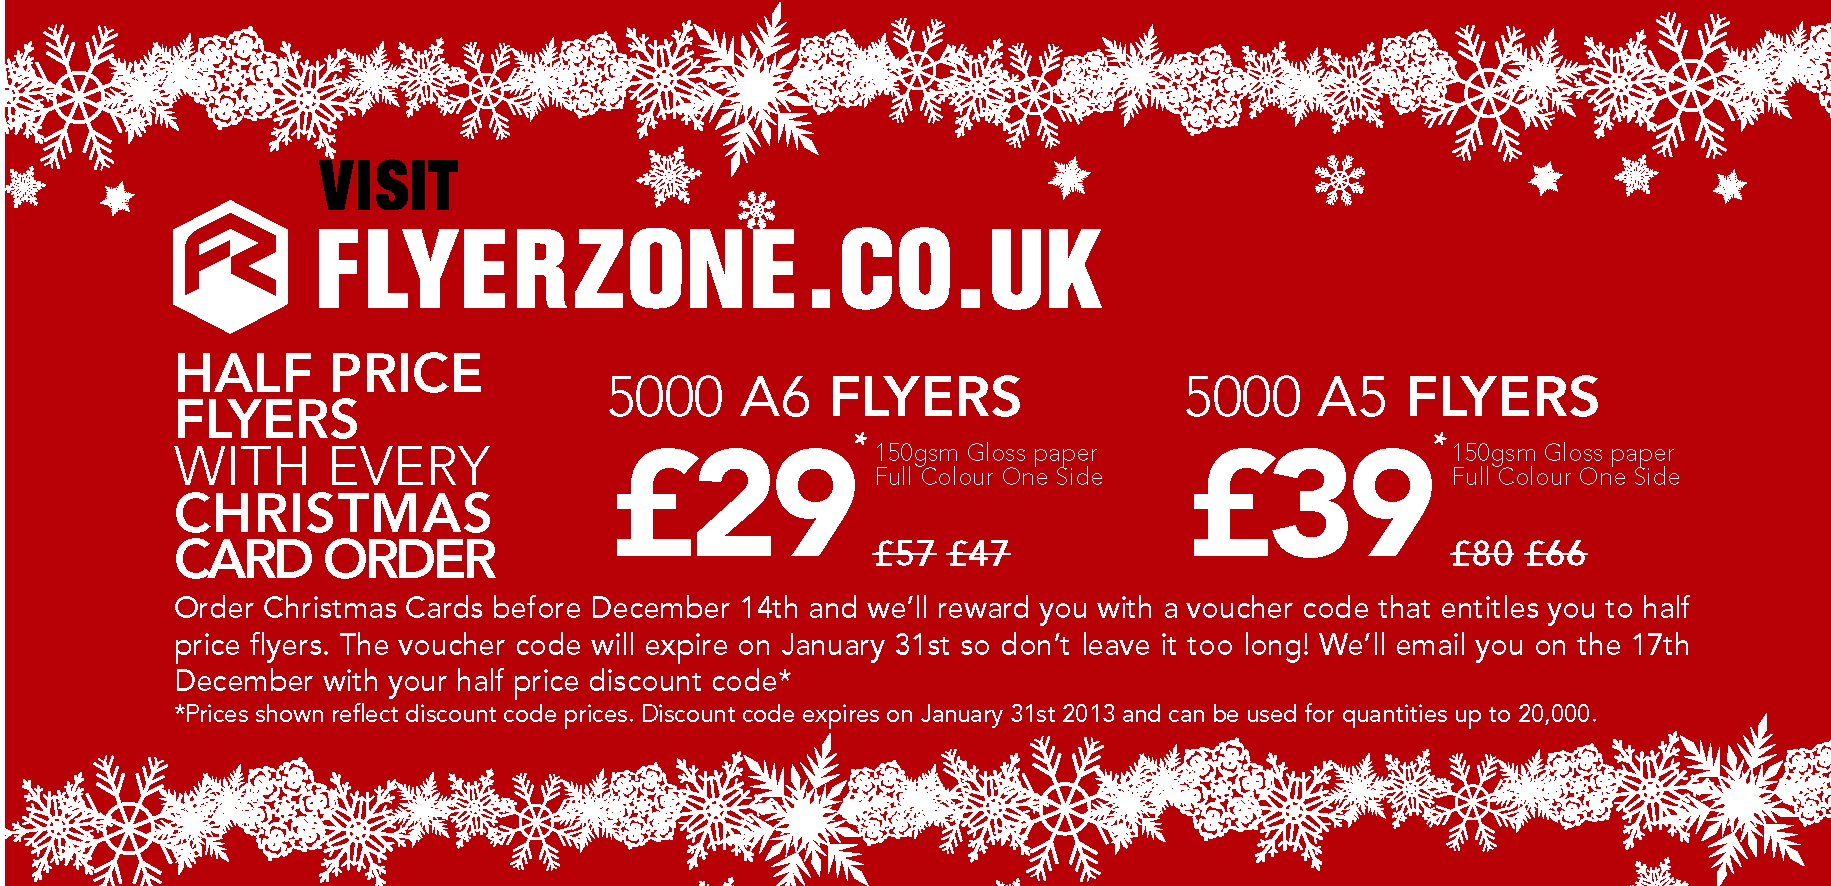 half price flyers every christmas card order flyerzone 0